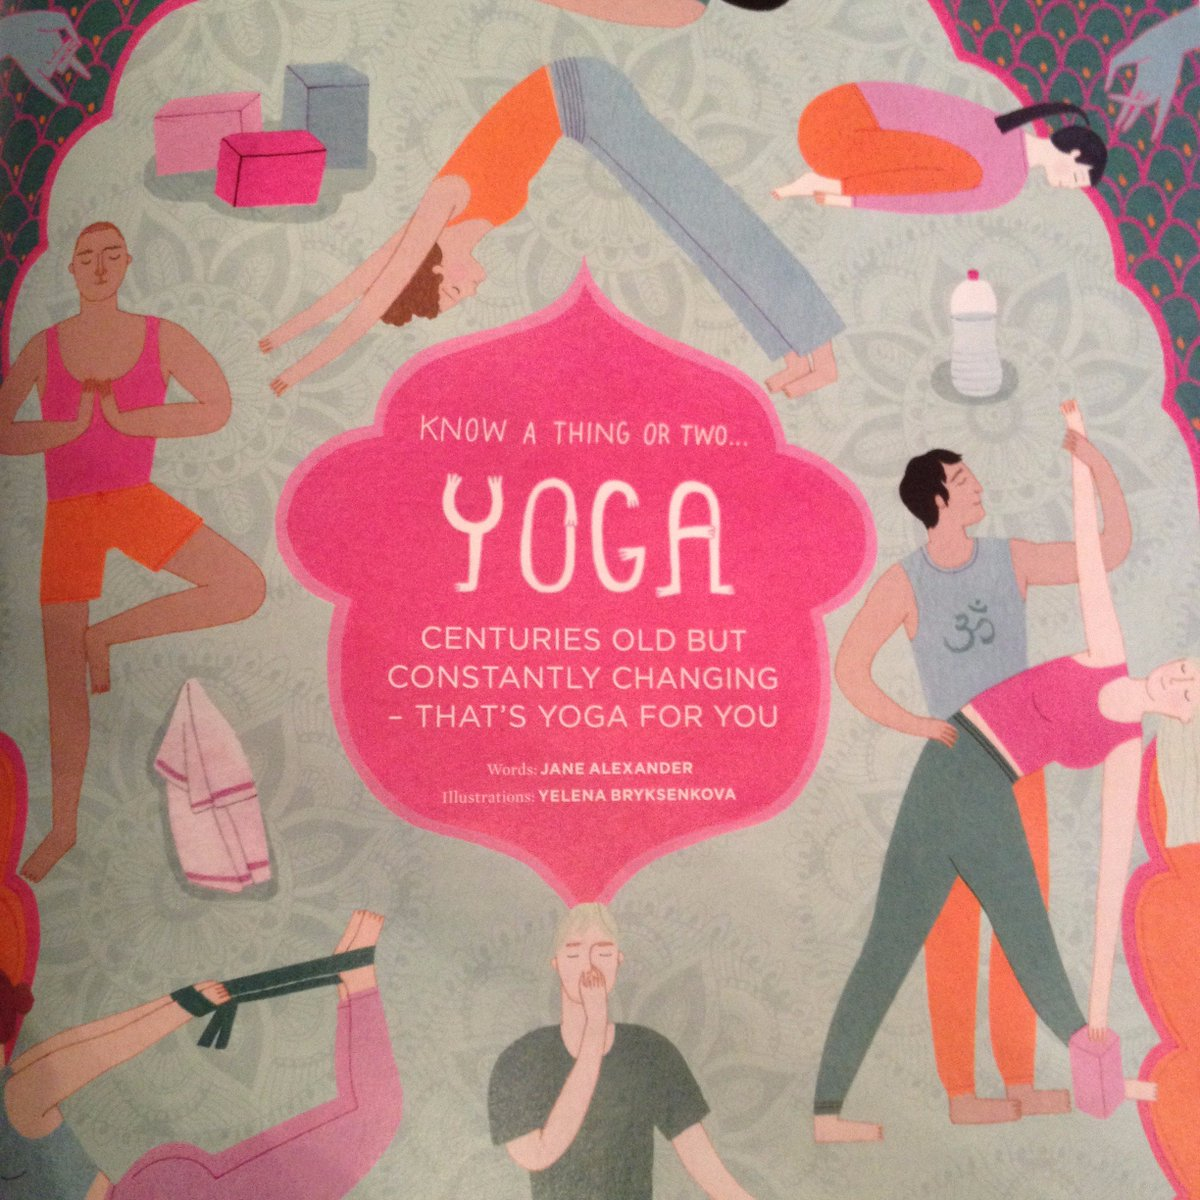 Love @simplethingsmag & thrilled to write for it - giving the lowdown on #yoga in the new issue.  :-) https://t.co/tTfpUmC4GY